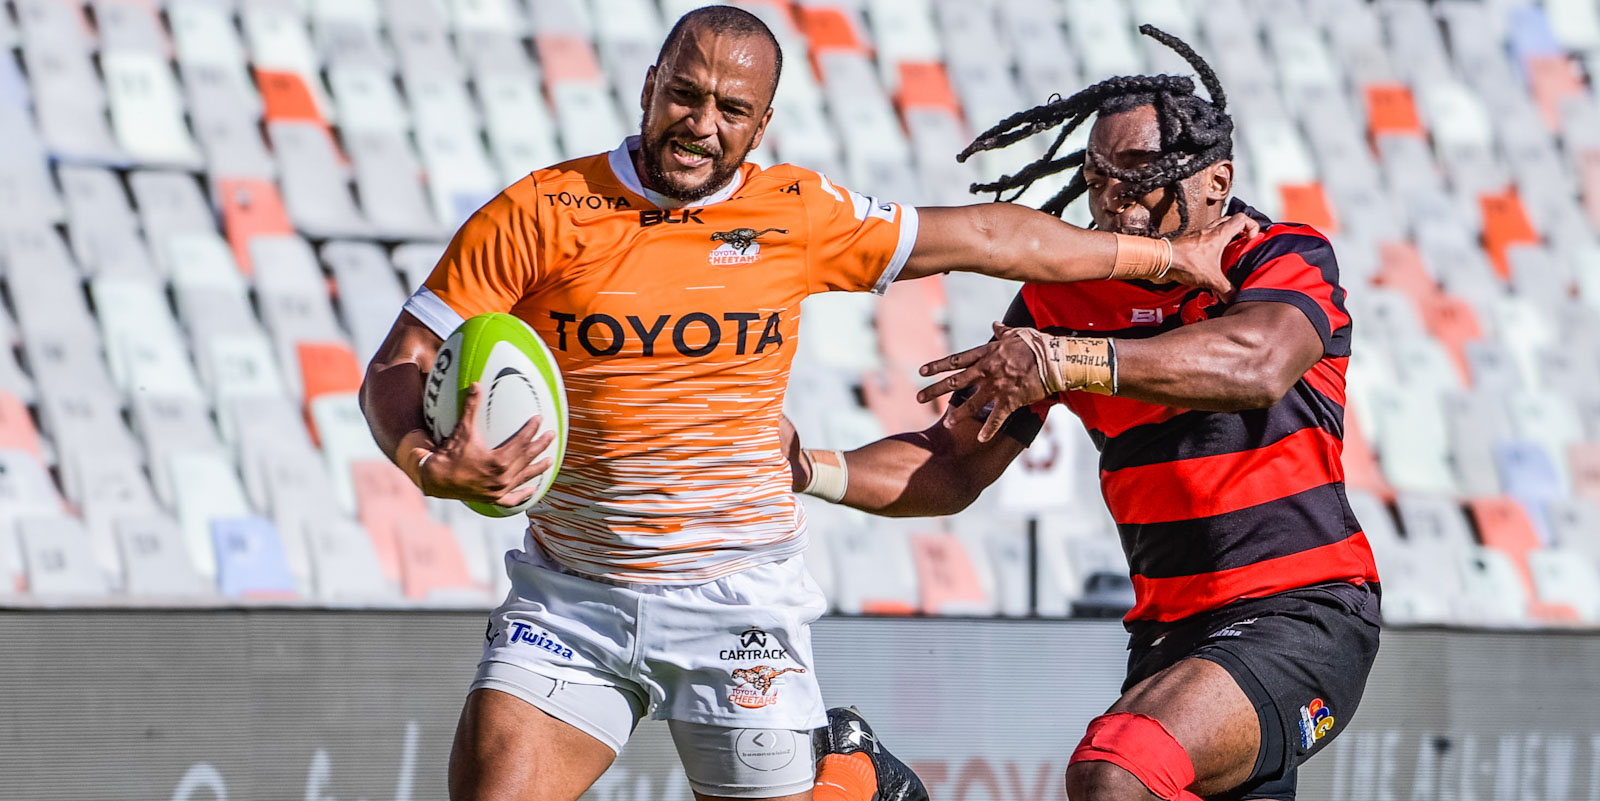 Rhyno Smith scored two of the Toyota Cheetahs' 11 tries